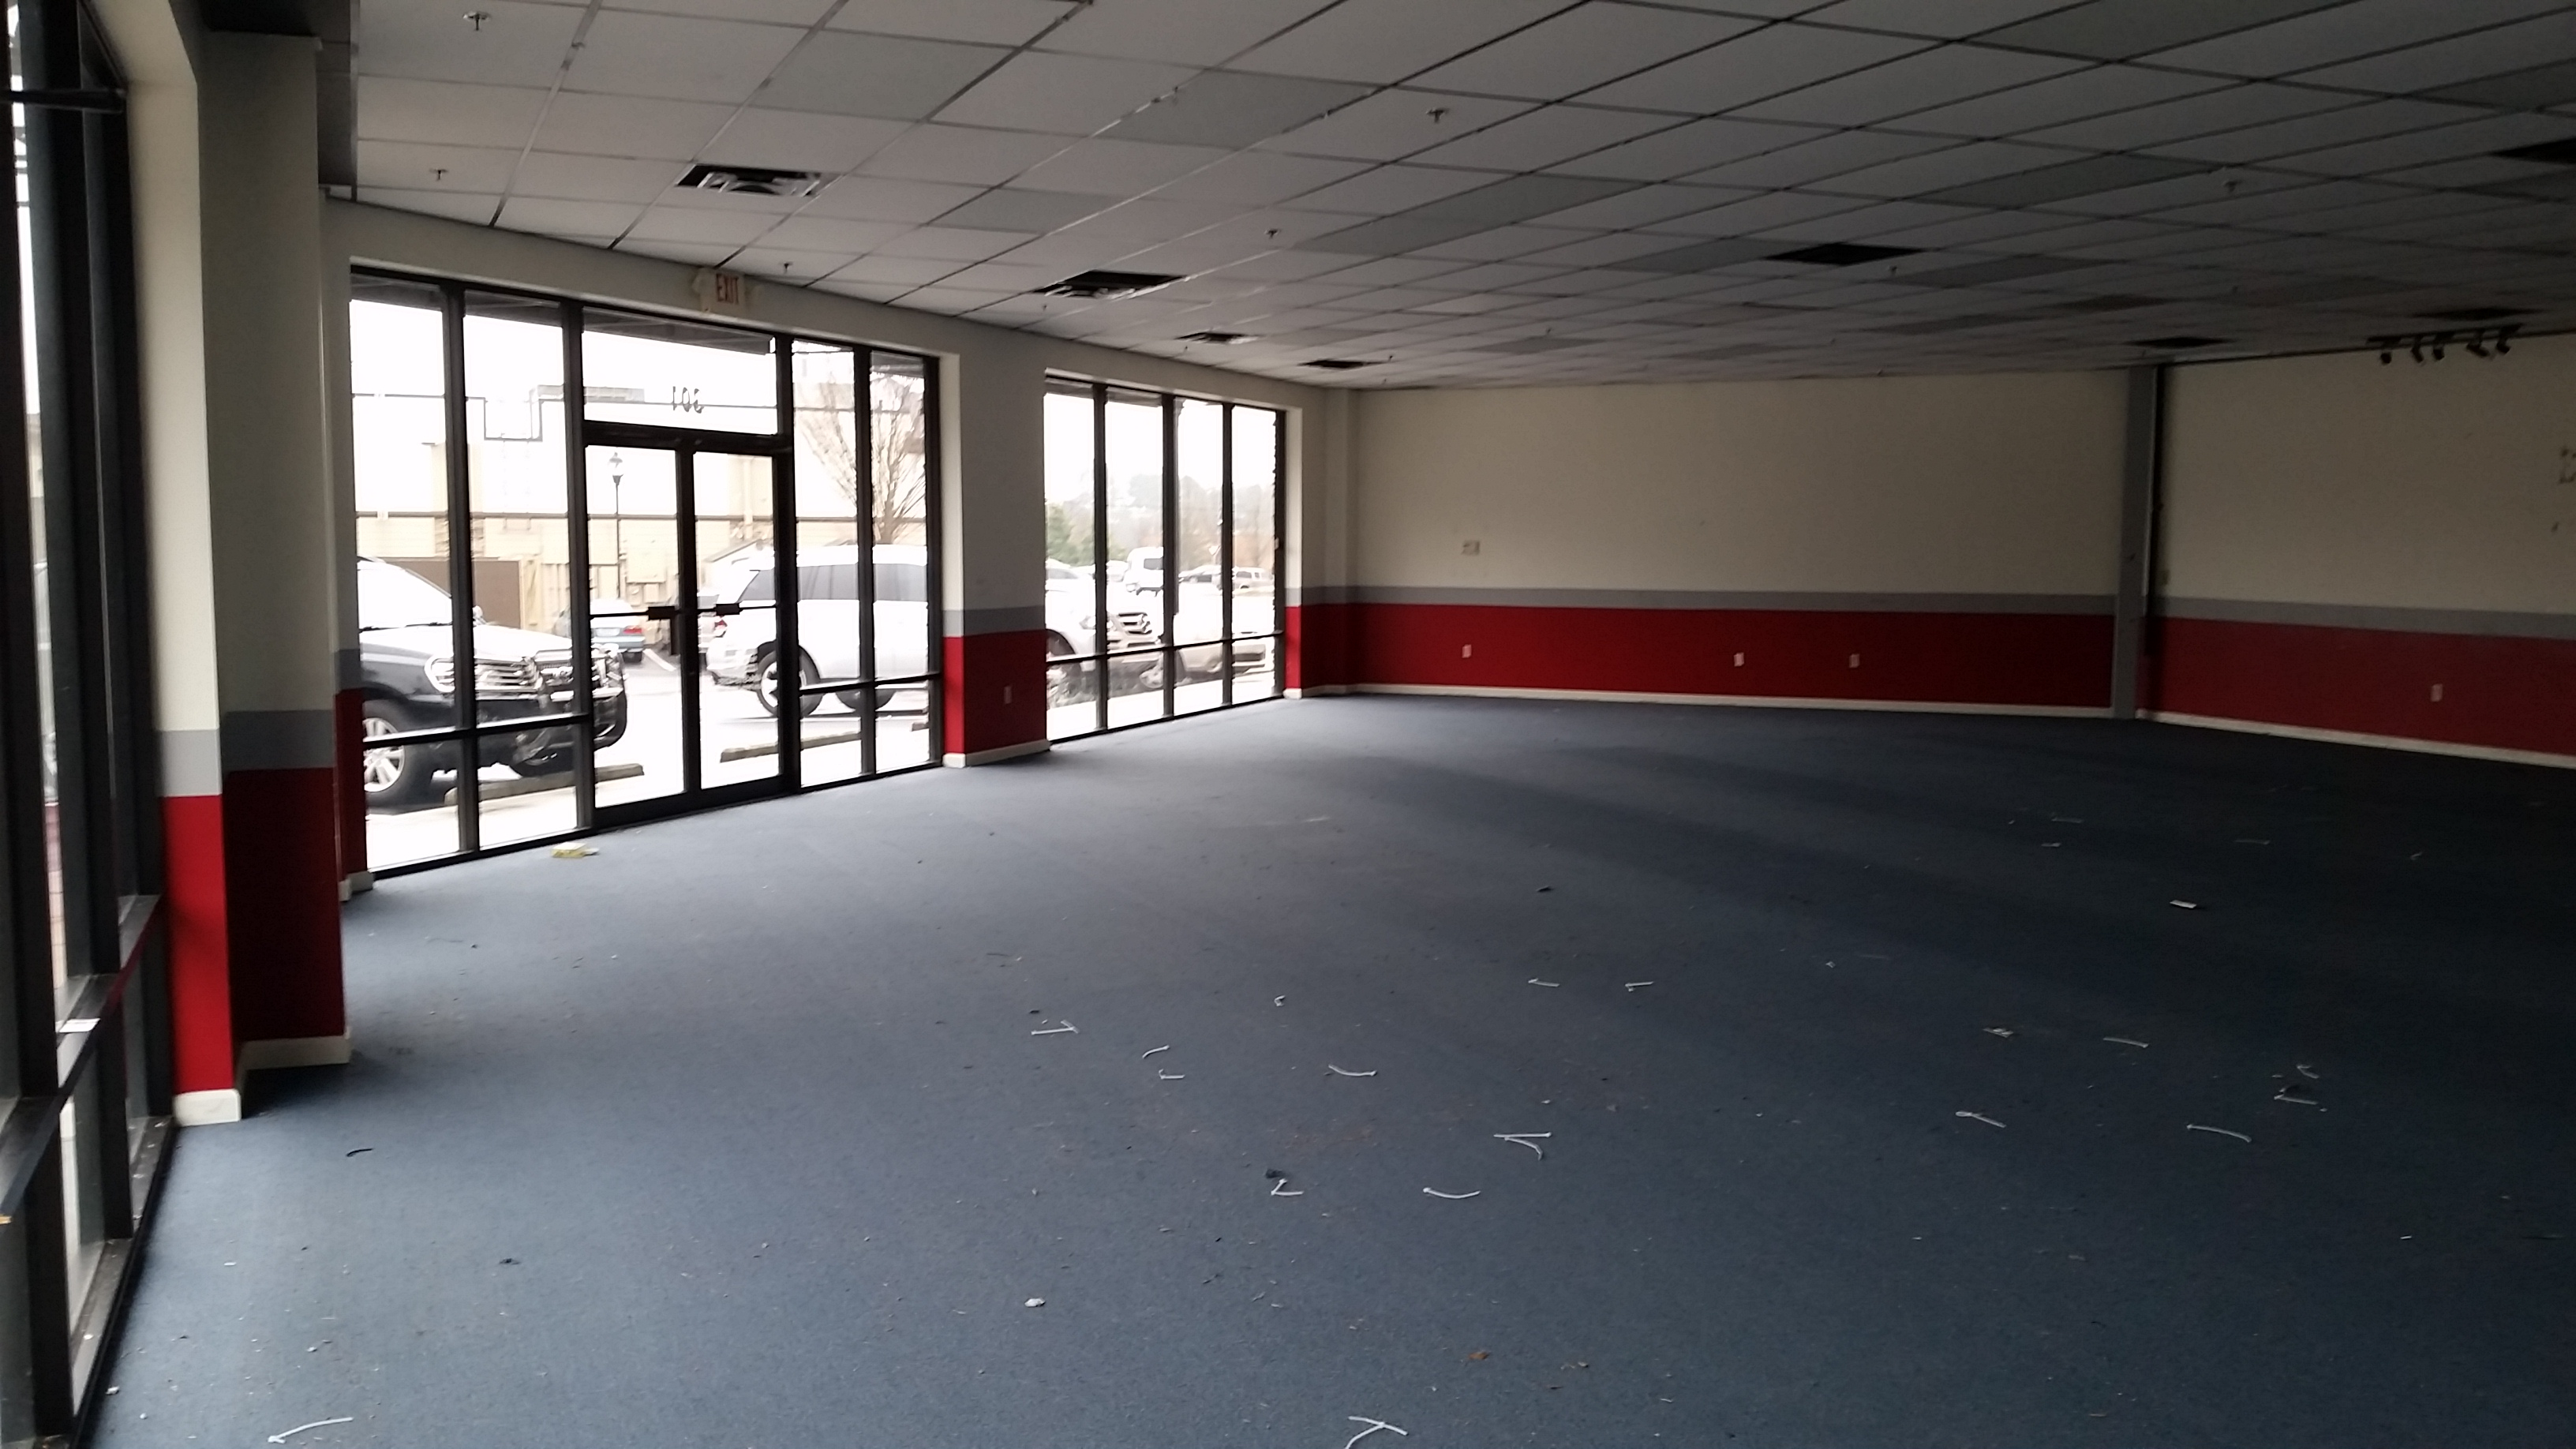 Vaperite Johns Creek Glr Group Store Build Outs